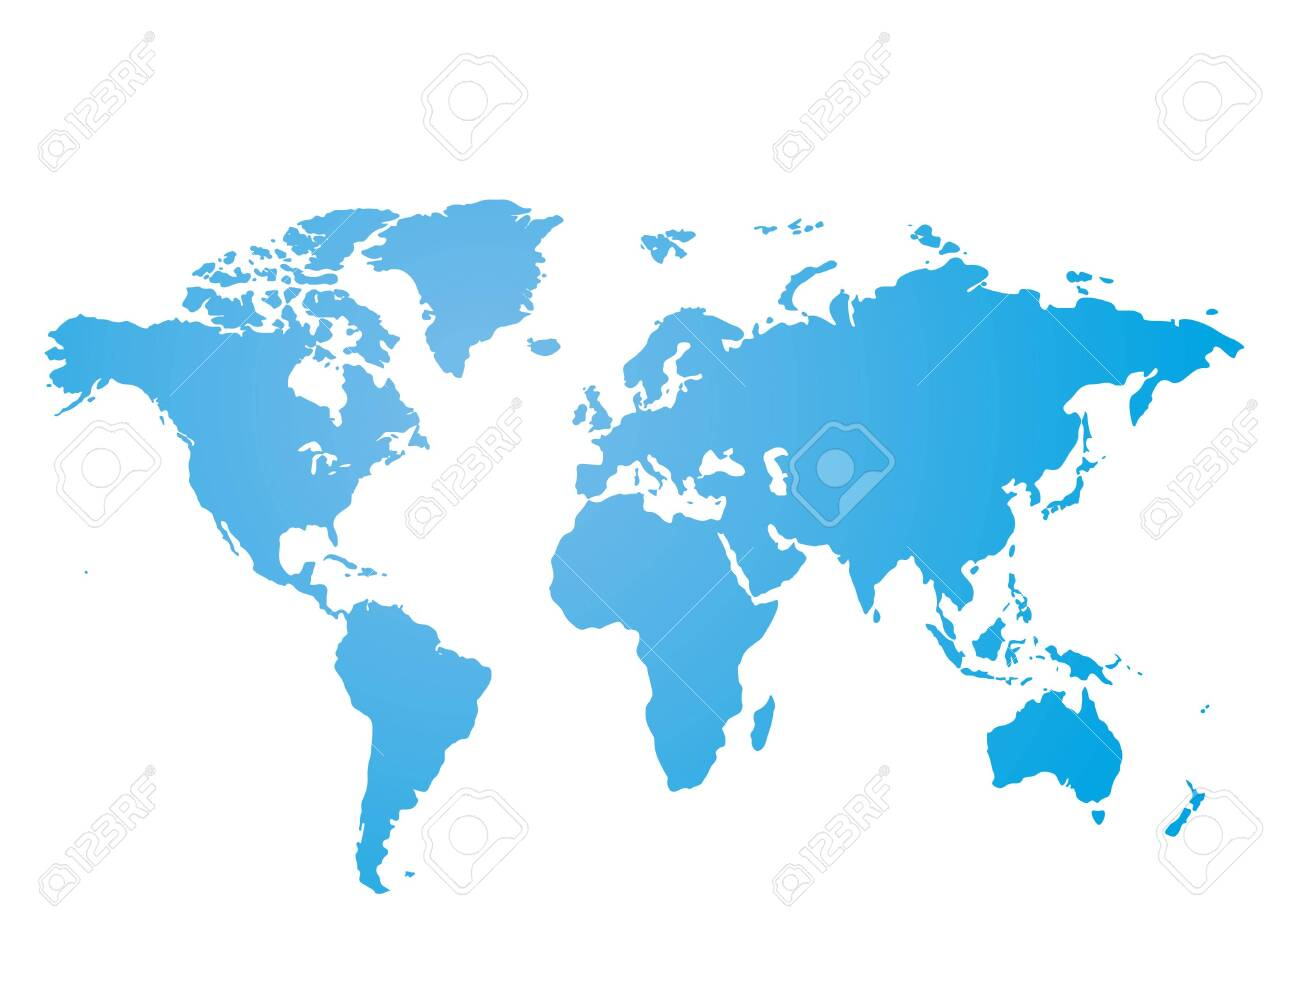 Blue similar world map blank for infographic isolated on white background. Vector illustration - 145232962